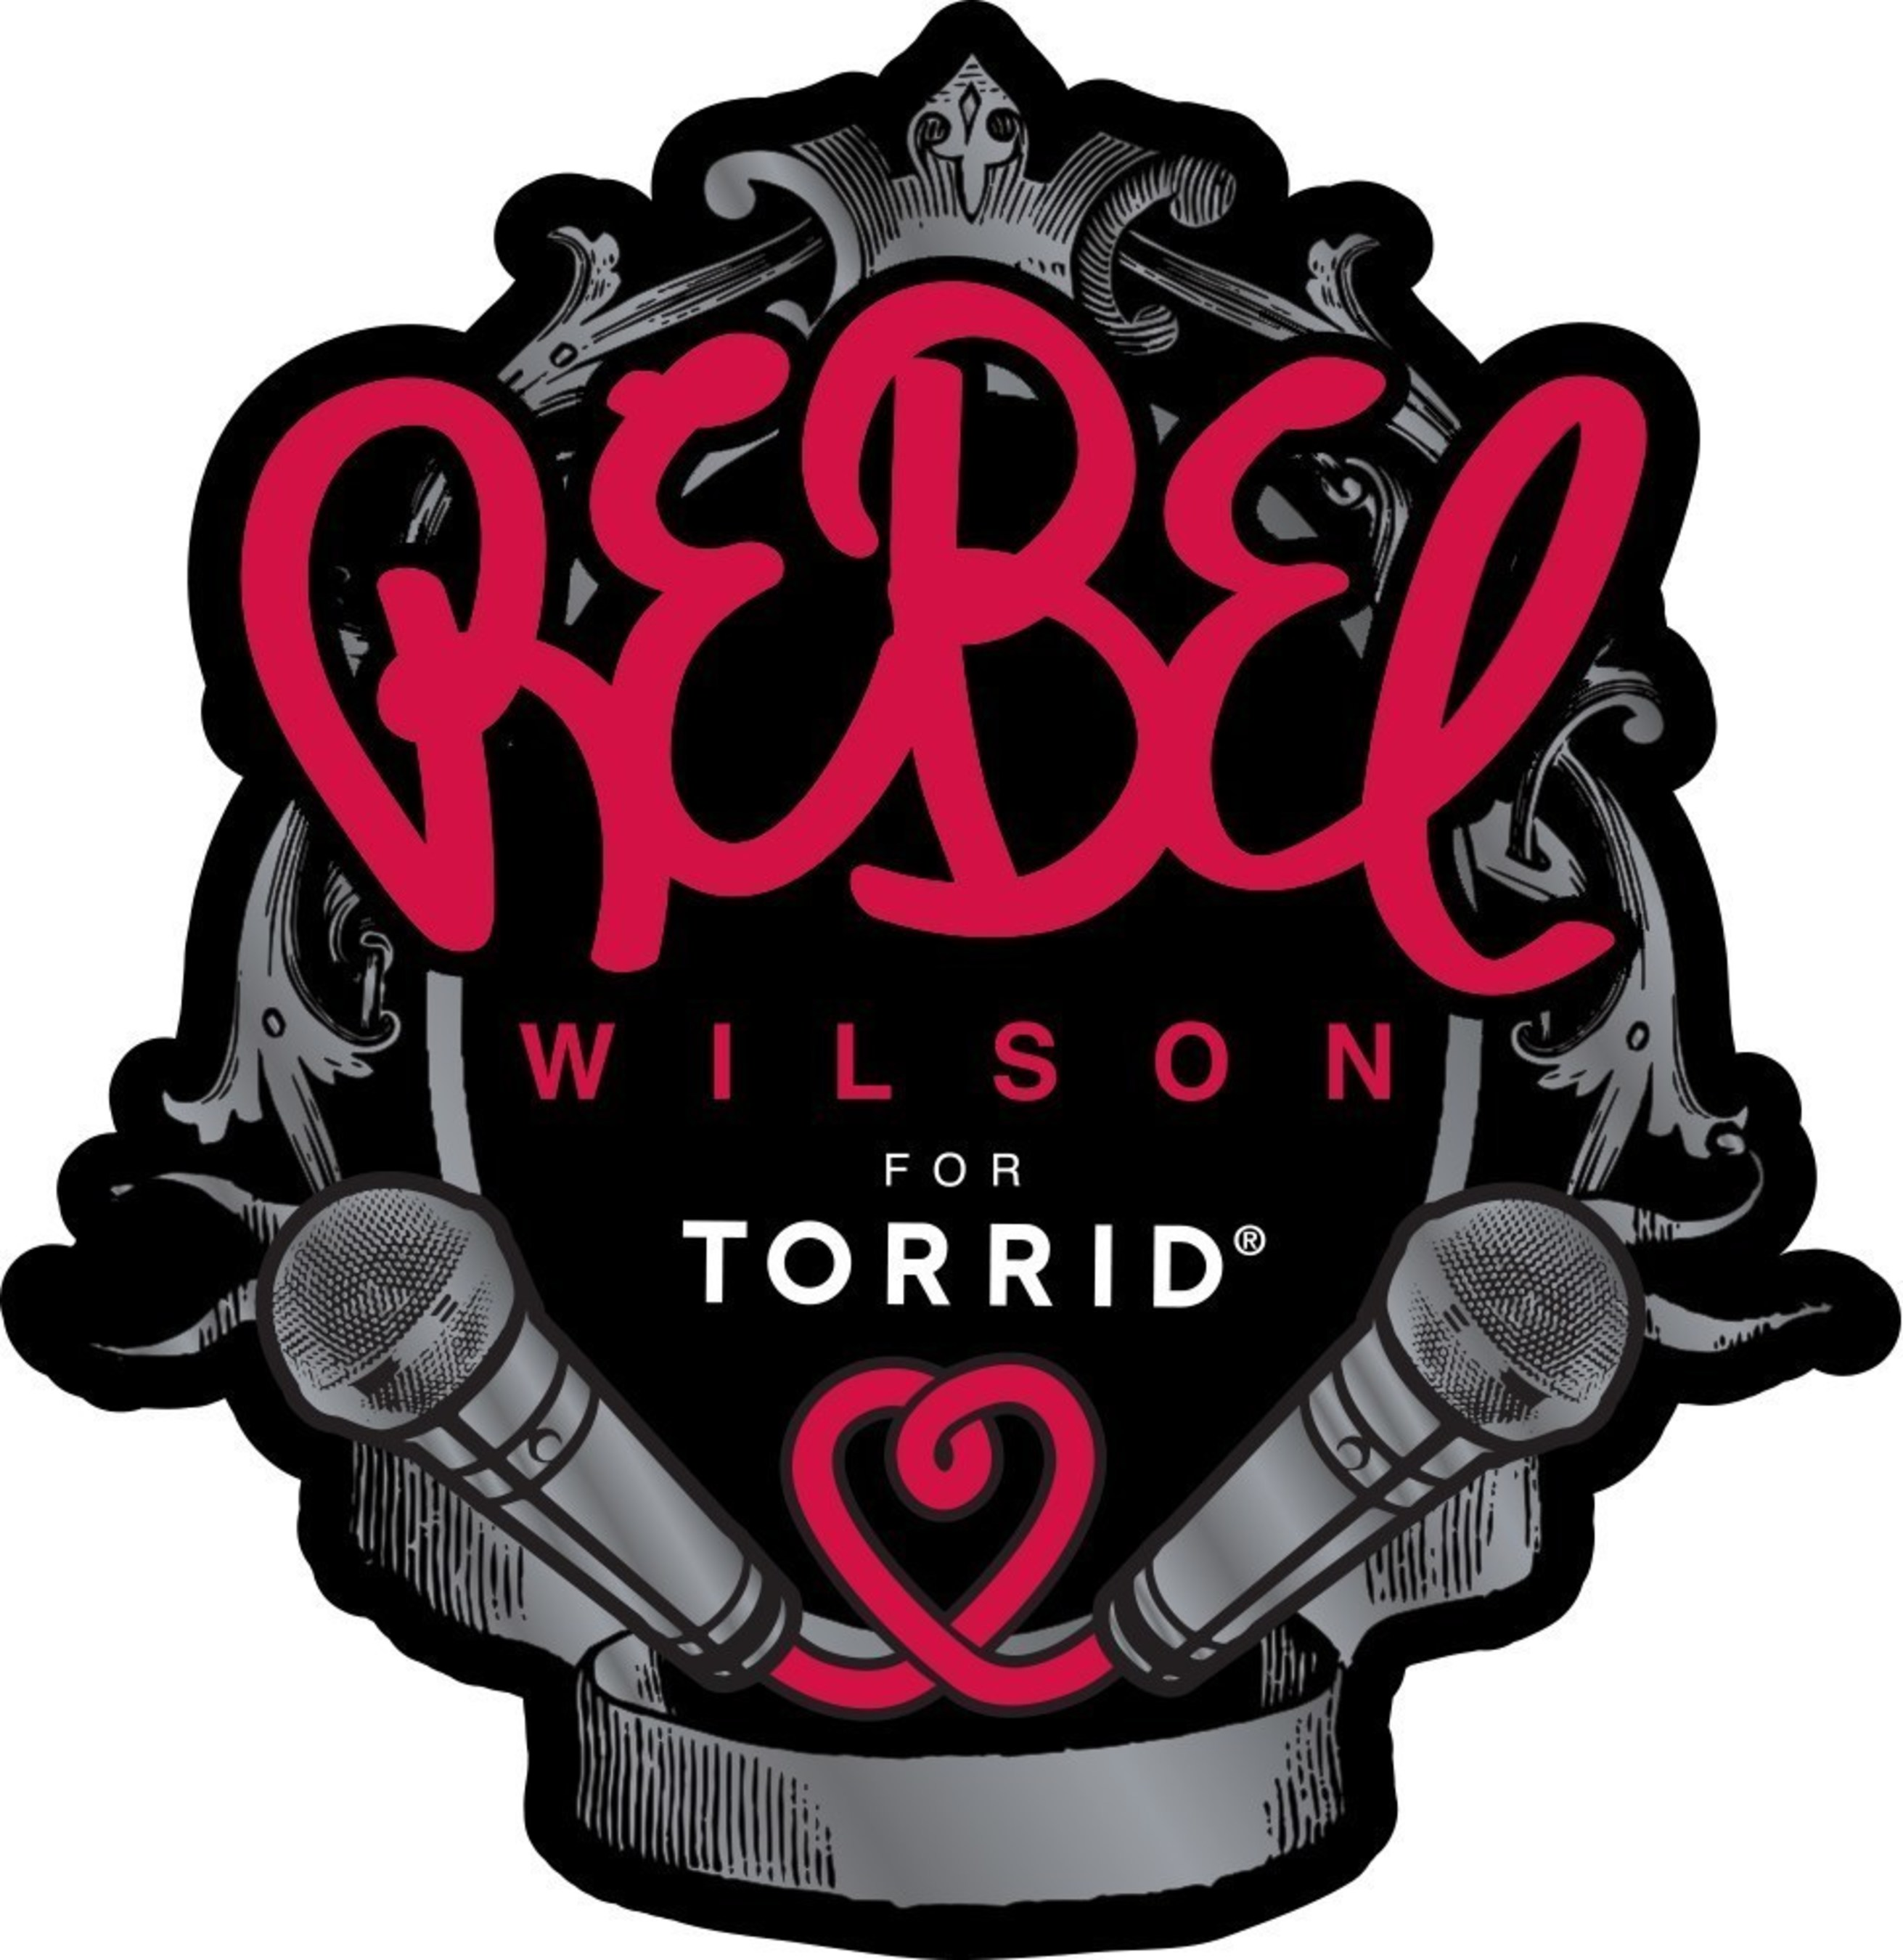 a00908b234 TORRID Teams Up With Actress Rebel Wilson For Their First Fashion  Collaboration